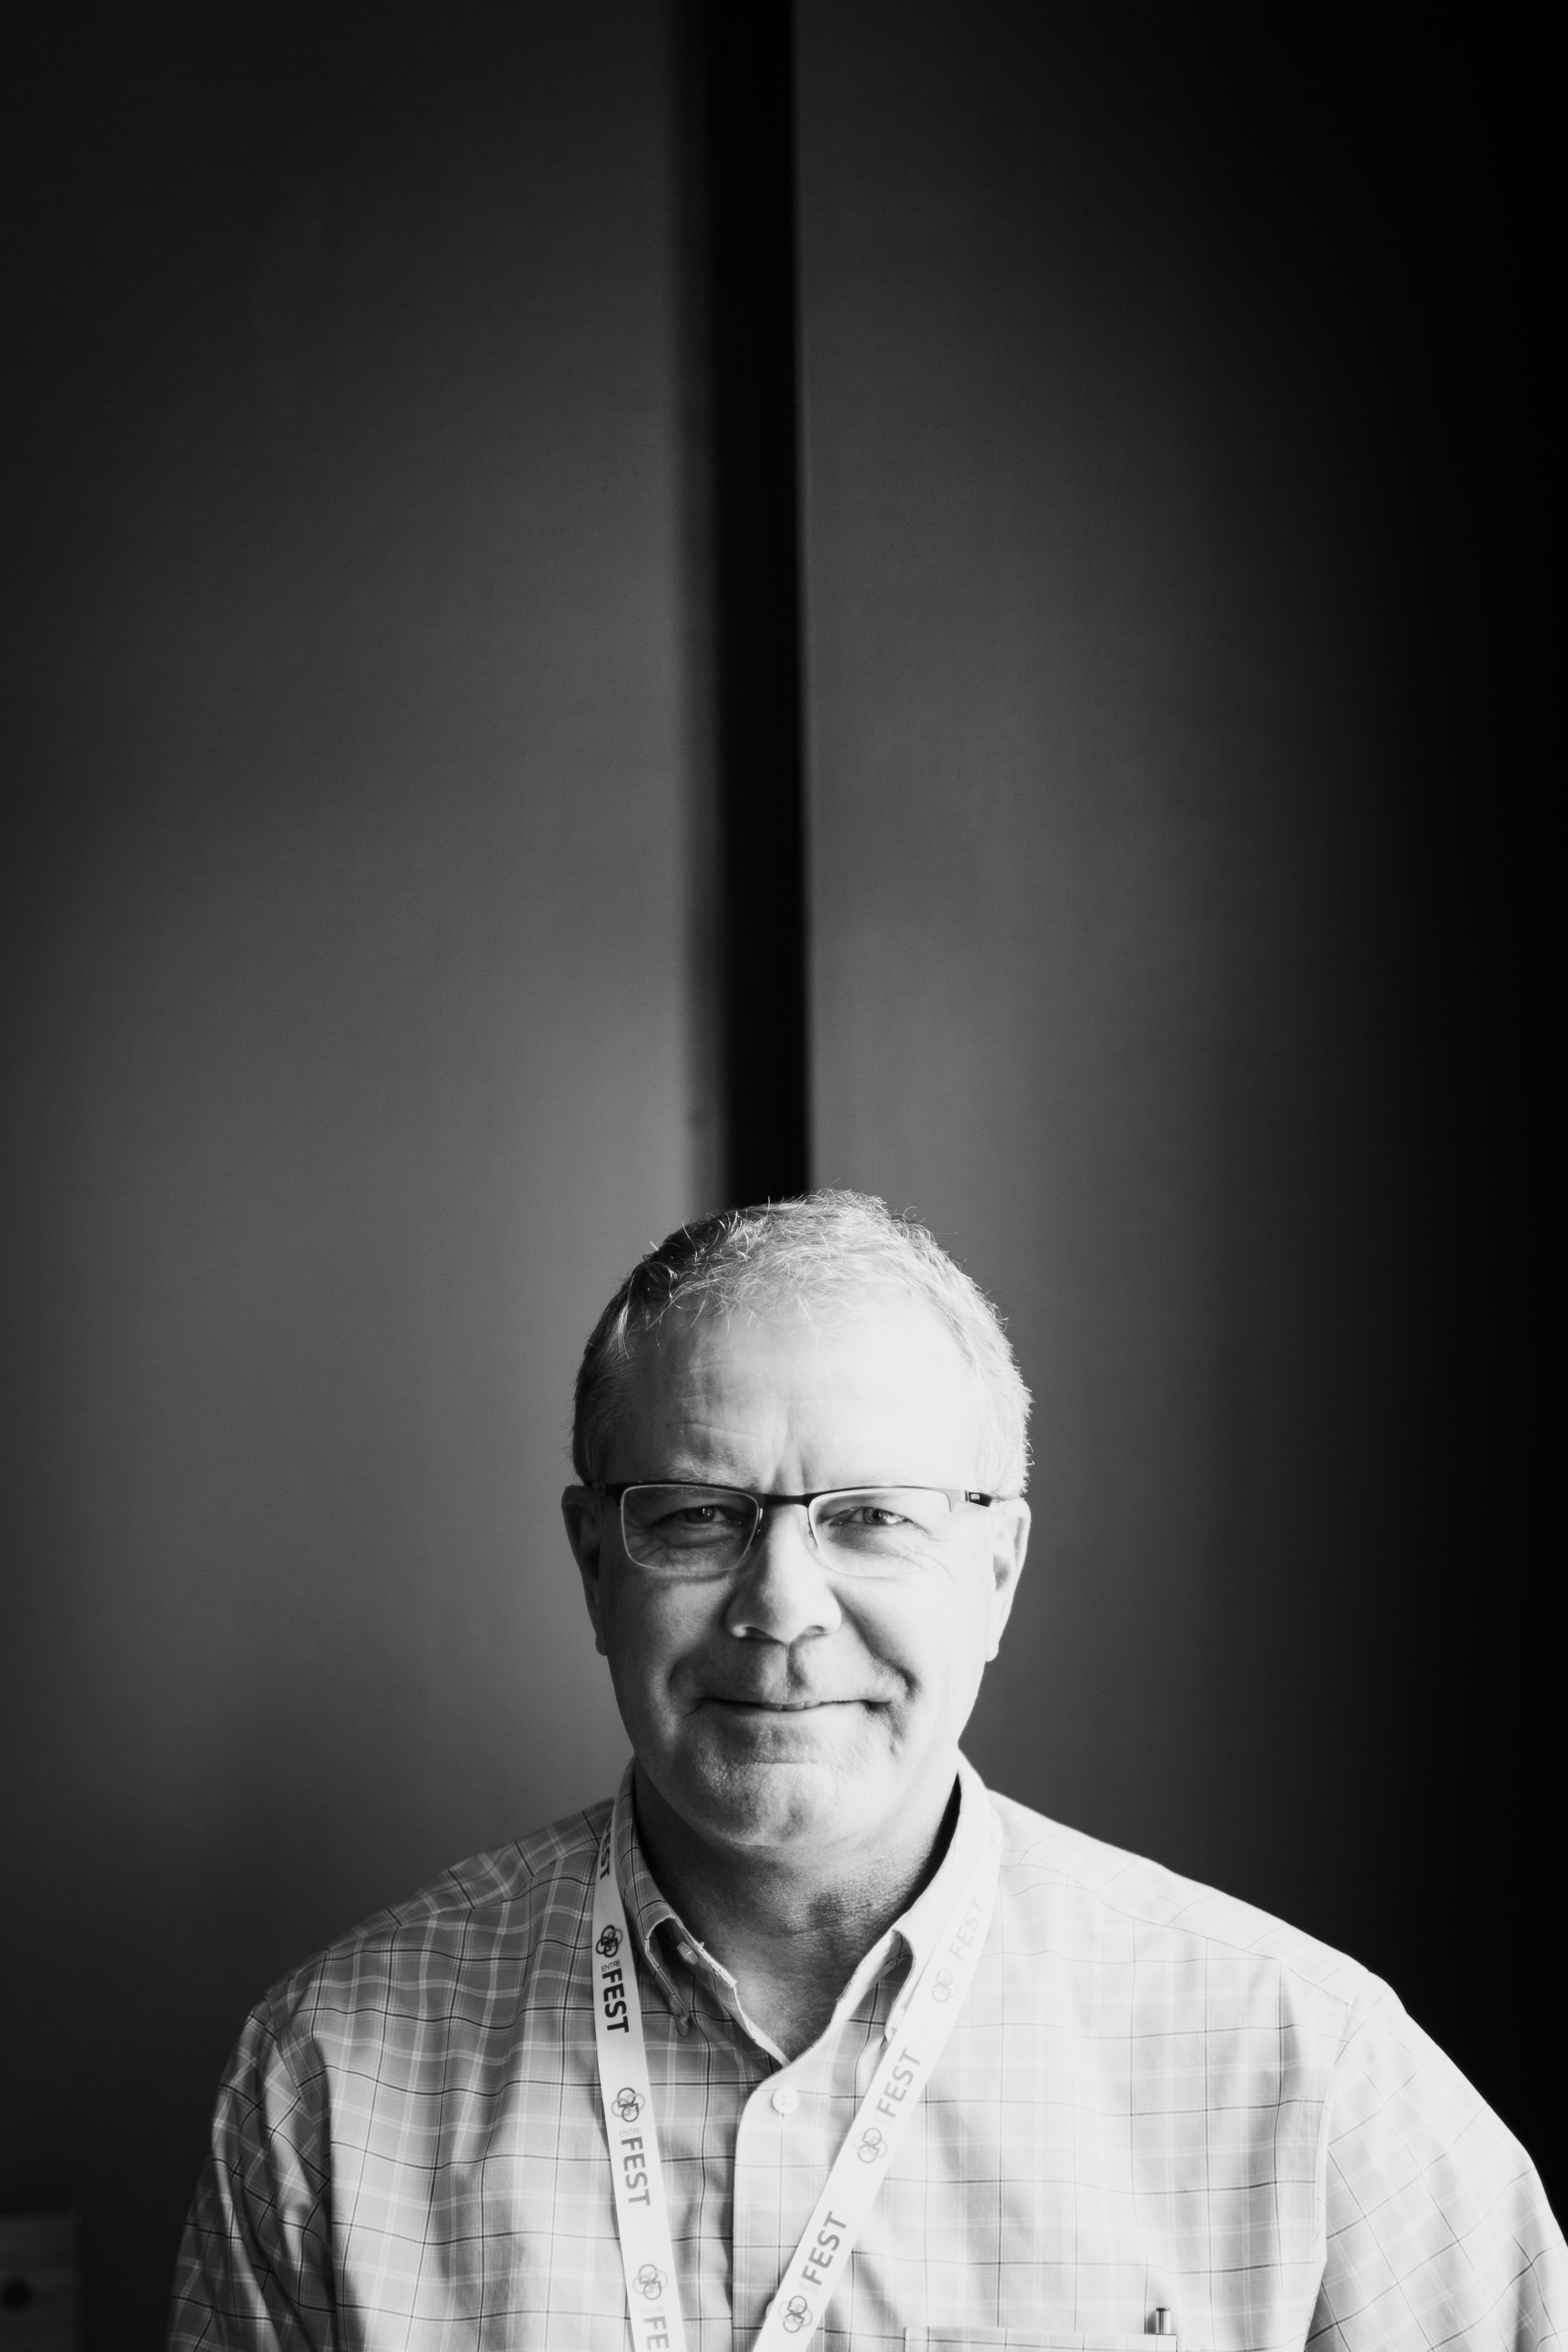 Meet Scott. Scott is here to support and contribute to the amazing entrepreneurial community we have in Iowa. We concur.